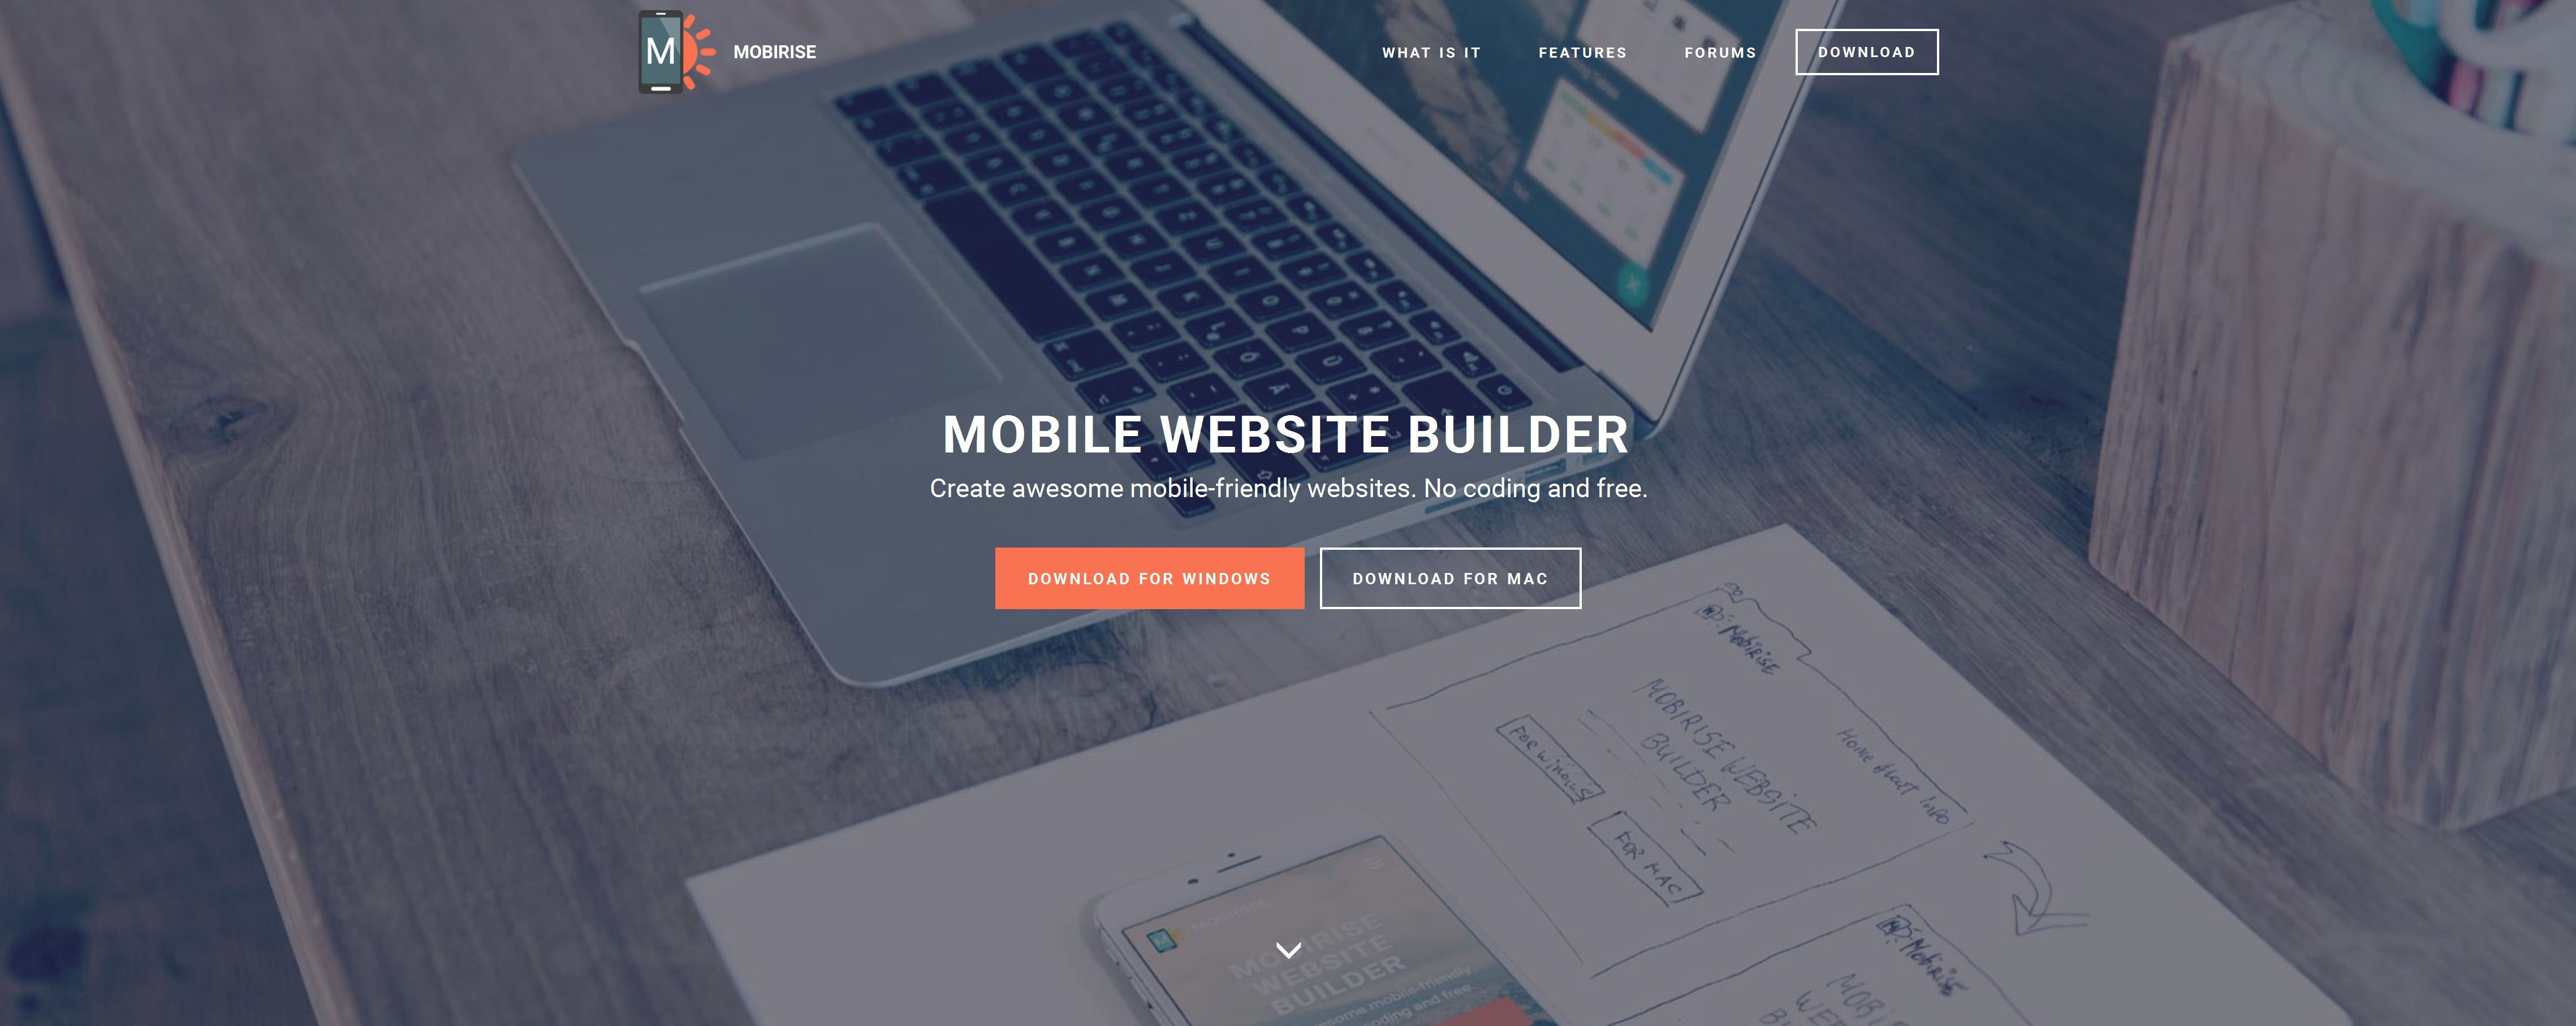 Free Mobile Website Builder